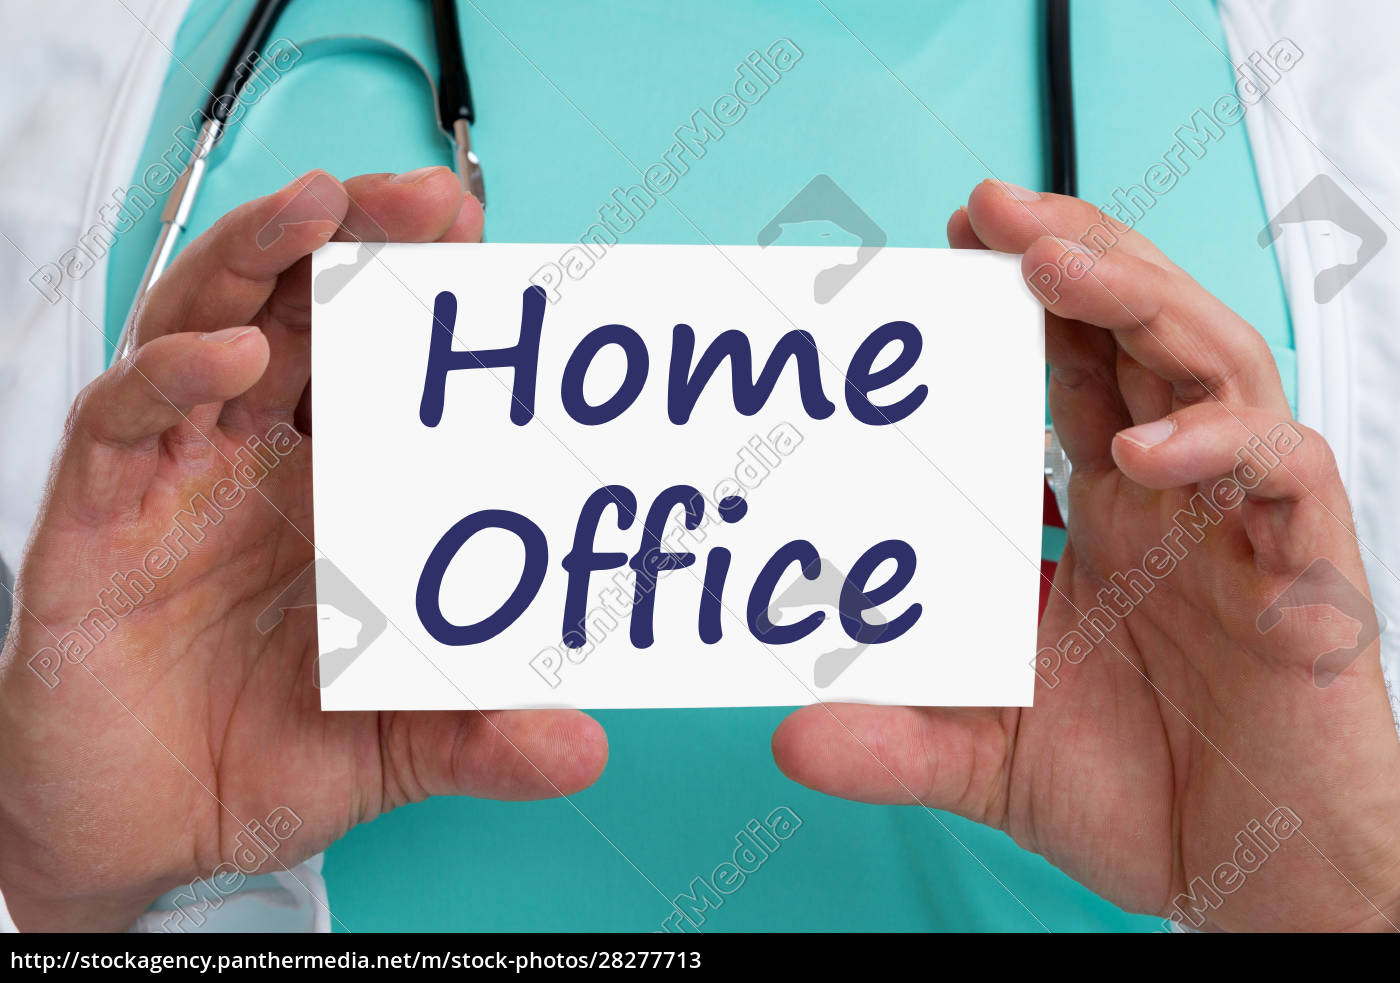 home, office, work, working, coronavirus, corona - 28277713